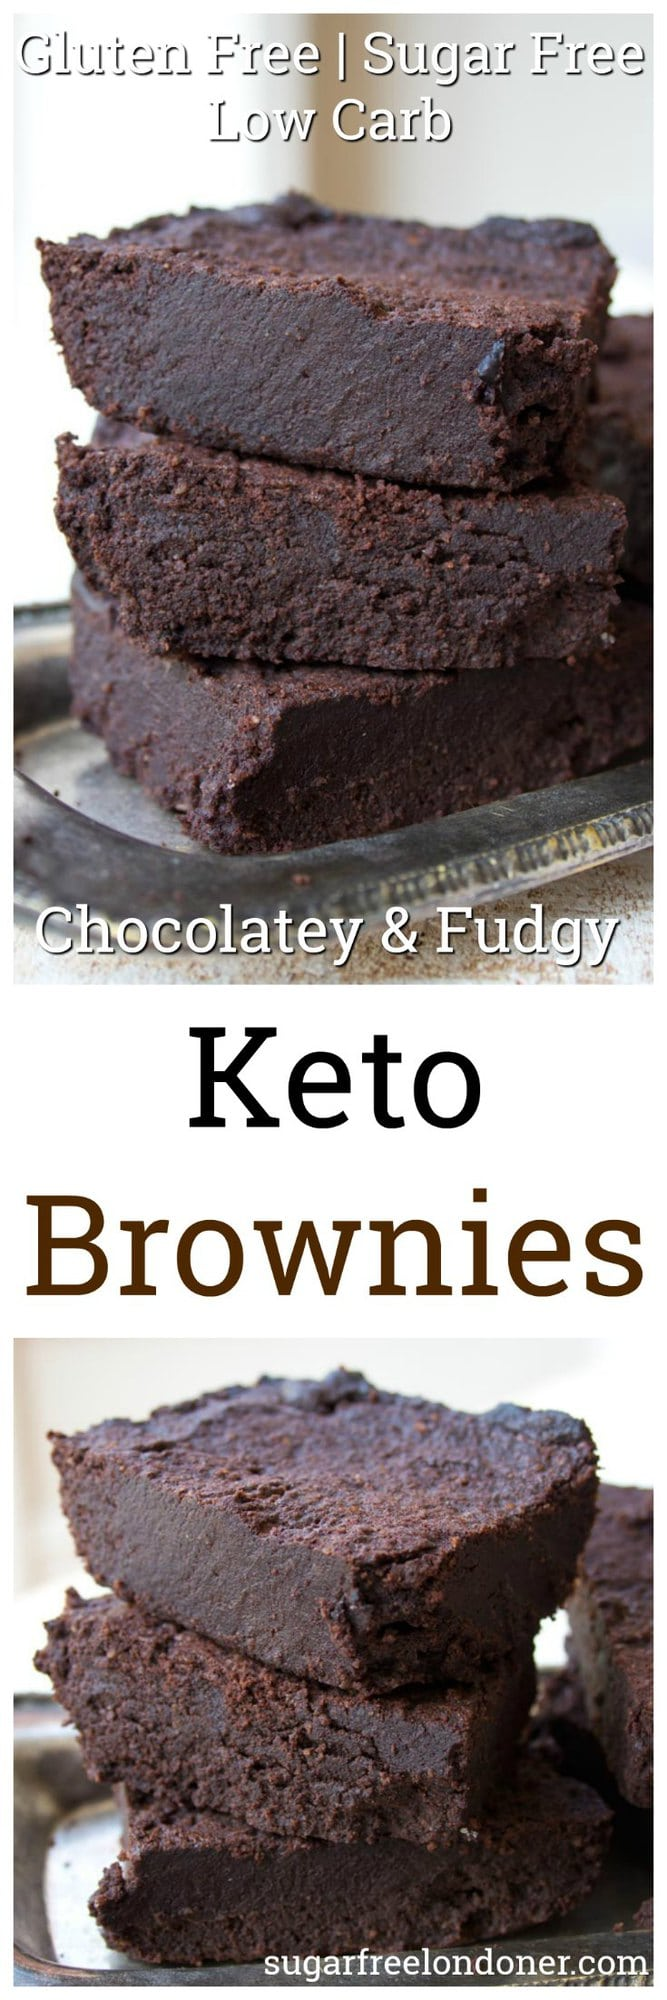 The fudgiest, most chocolatey Keto brownies ever. This simple low carb and sugar free recipe makes perfect brownies time after time. Gluten free and diabetic-friendly. #brownies #lowcarb #keto #sugarfree #diabetic #glutenfree #LCHF